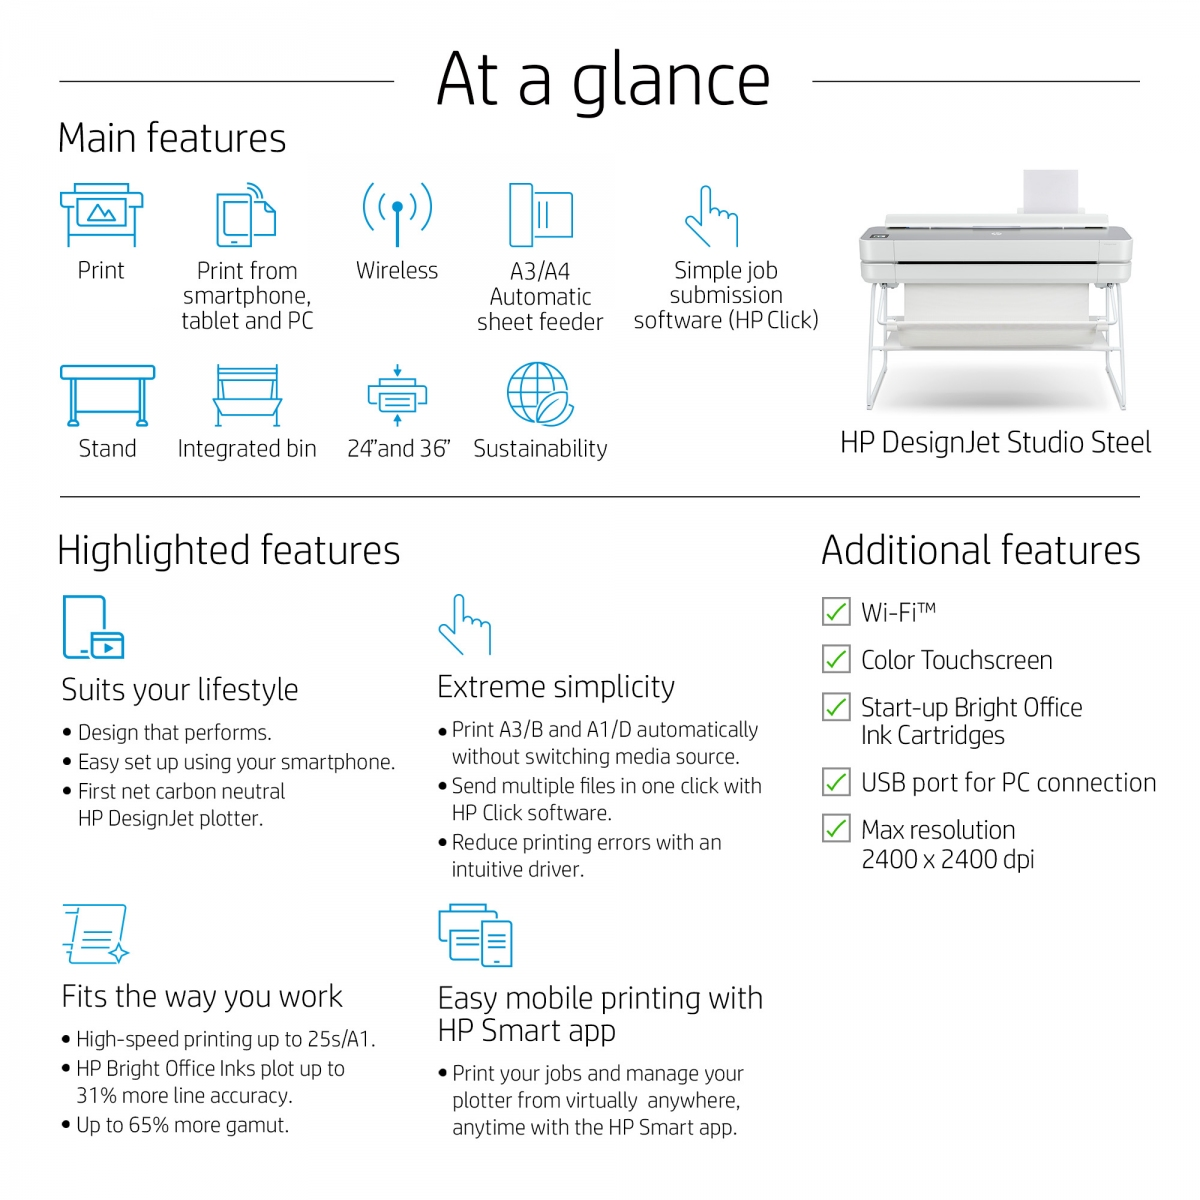 HP DesignJet Studio Steel 5HB12C 24-in Printer - Key points at a glance